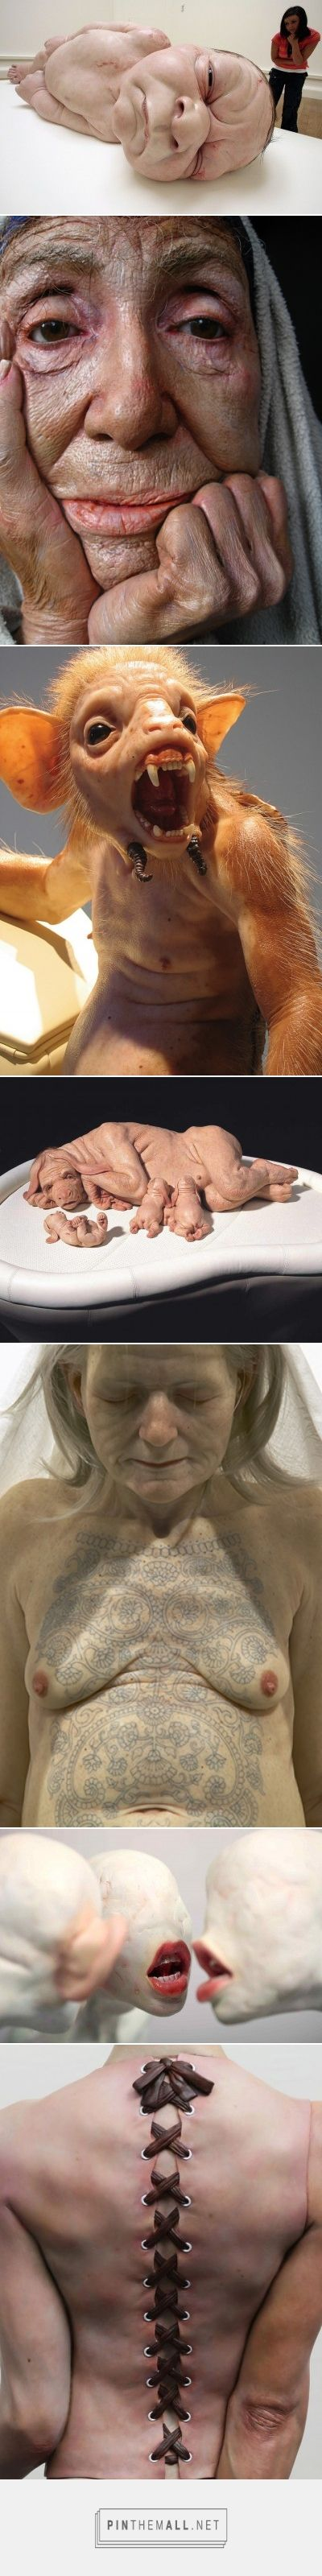 Collection of hyper realiste Artists over the World : Xooang Choi, Ron Mueck, Patricia Piccinini, Sam Jinks for the most famous of them and much others… Visit the page.